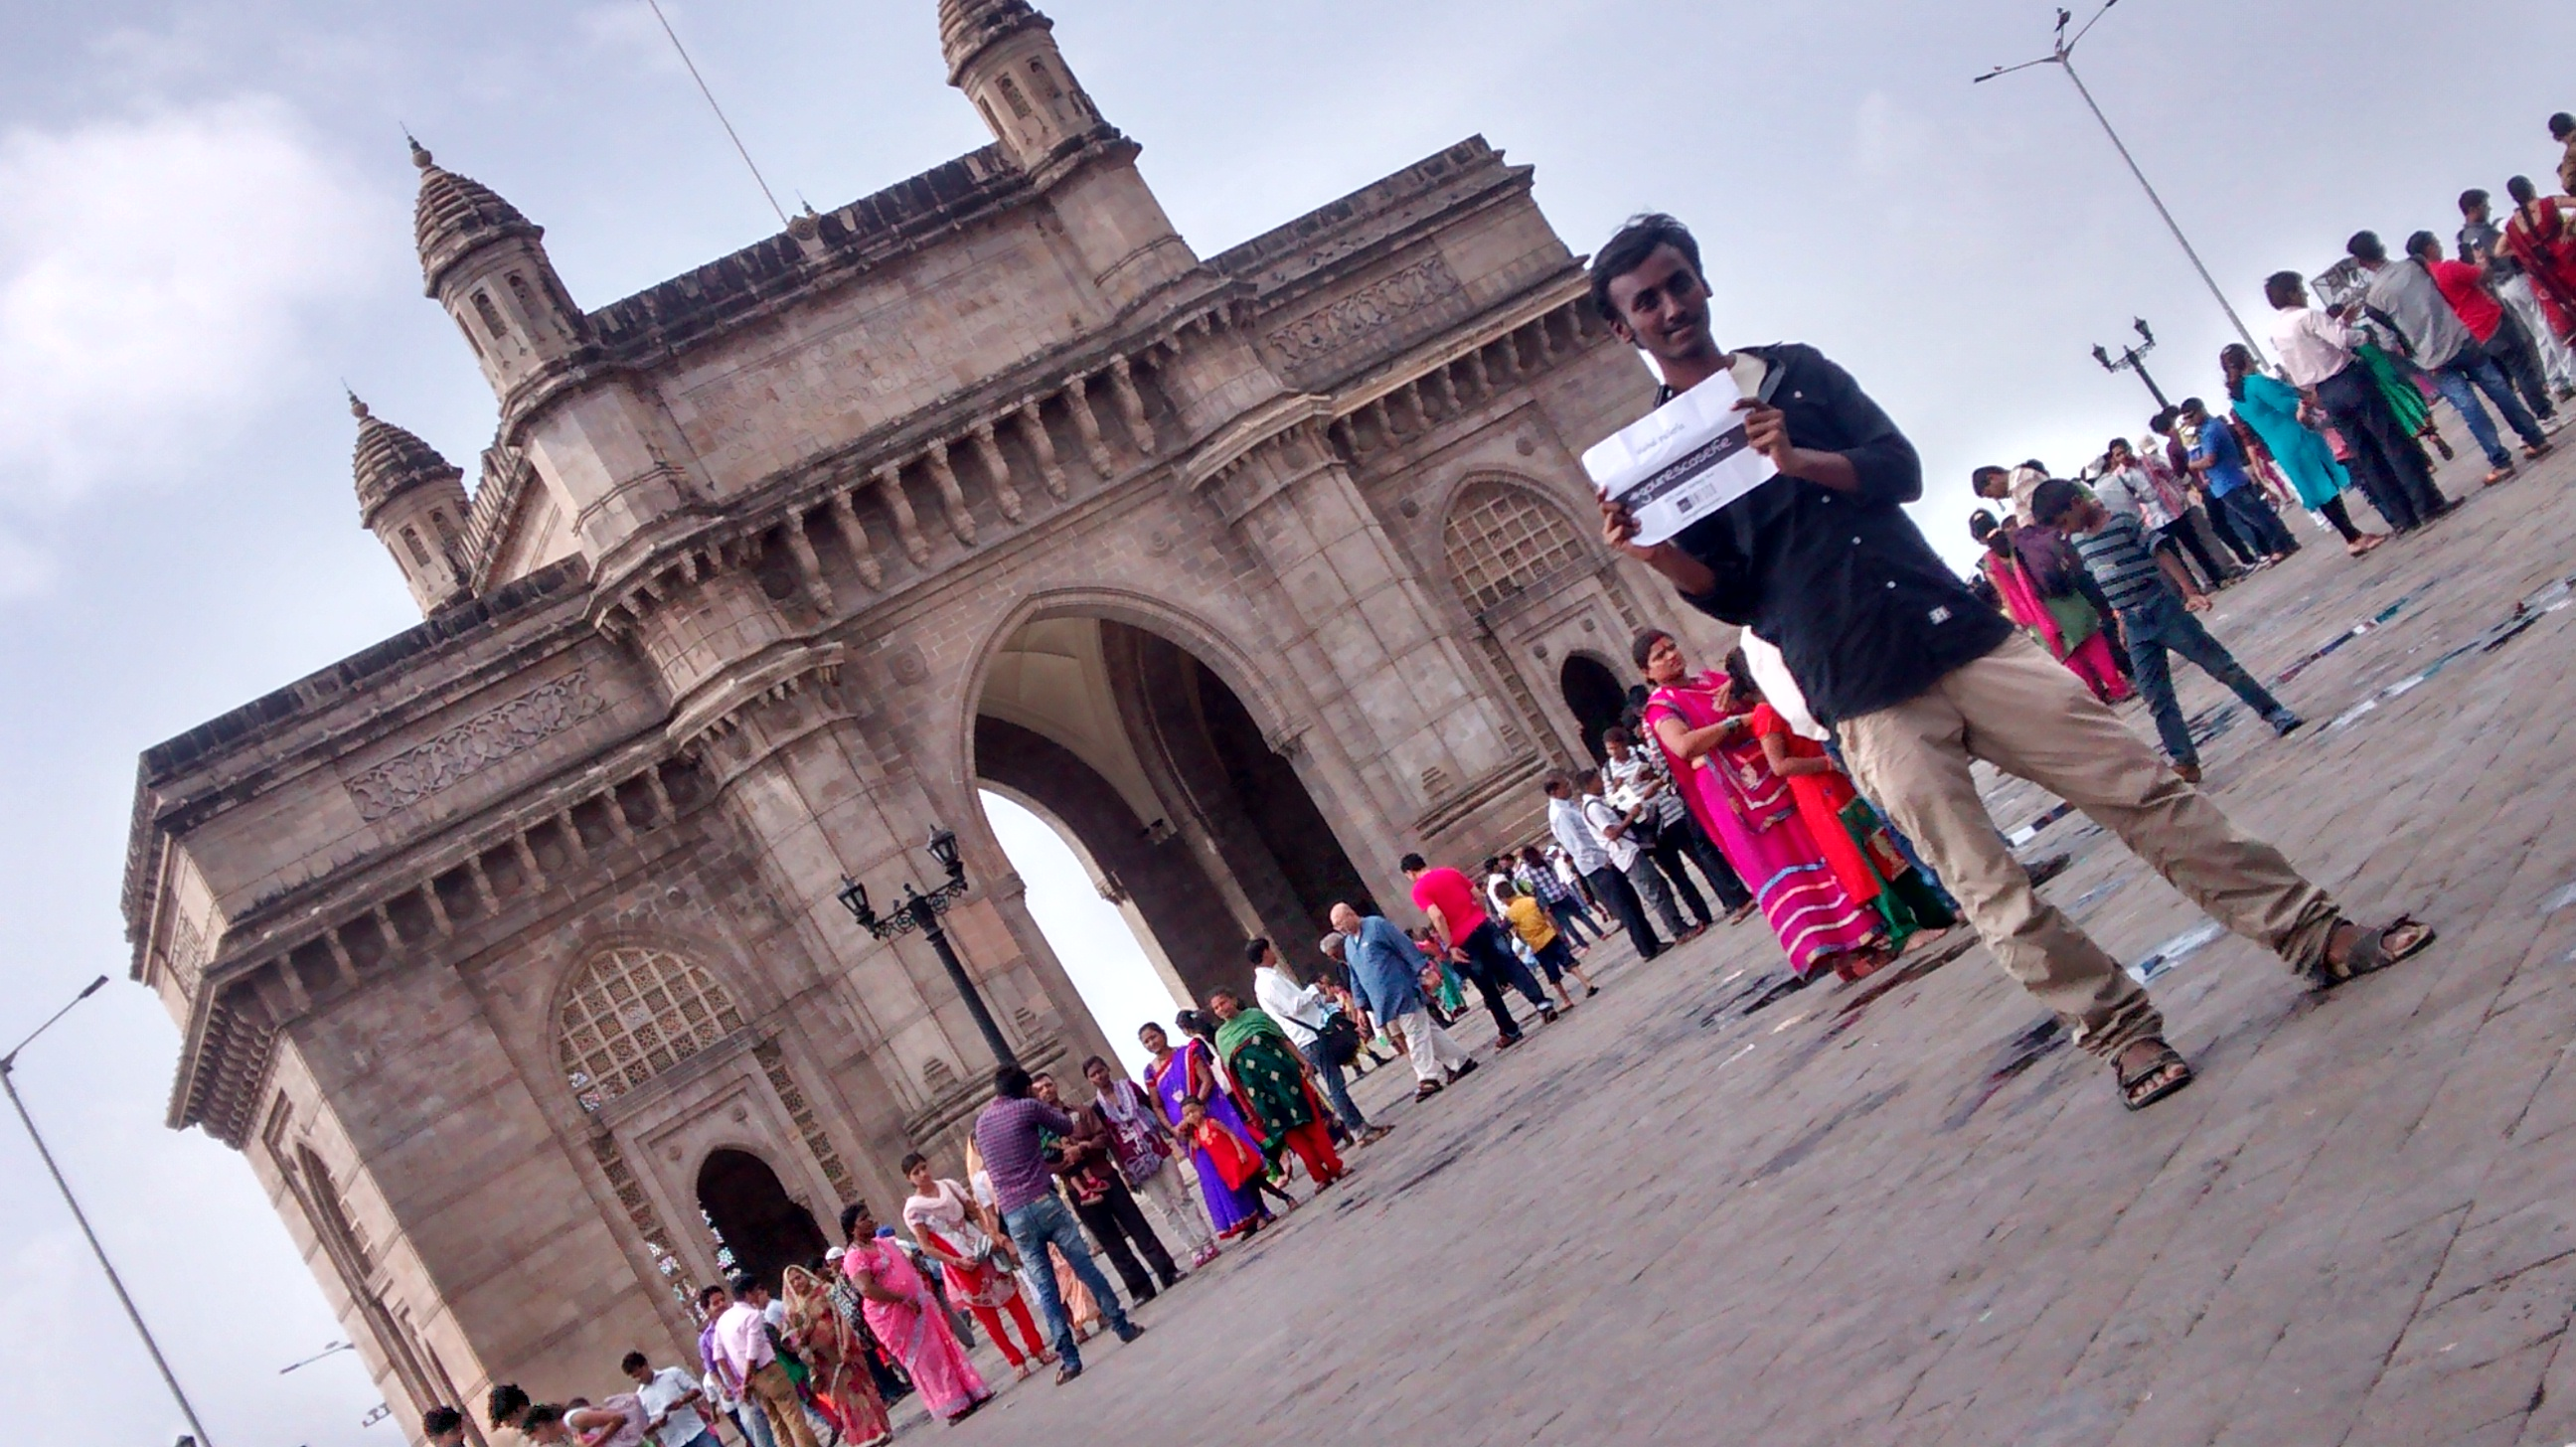 #gounescoselfie#gatewayofIndia I had a visit to Mumbai and took a selfie for GoUnesco at GateWay of India. Gateway of india is the must visit place in Mumbai. It is surrounded by the Arabian sea. Also there is Hotel taj . We can have a good number of pics here and can enjoy boating in the Sea which is a memorable experience !! Coming to the history of Gateway of India,it is one of India's most unique landmarks situated in the city of Mumbai. The colossal structure was constructed in 1924,bordered by the Arabian Sea.The total construction cost of this monument was approximately 21 lakhs.The main objective behind the construction of the Gateway of India was to commemorate the visit of King George V and Queen Mary to Bombay (Mumbai).The architectural design of Gateway of India was fashioned by architect, George Wittet.The structural design of the Gateway of India is constituted of a large arch, with a height of 26m. The monument is built in yellow basalt and indissoluble concrete.The monument is structured in such a way that one can witness the large expanse of the 'blue blanket' right ahead, welcoming and sending off ships and visitors. Light ShowGateway of India:https://www.youtube.com/watch?v=qyad7cLMYus — atGateway Of India, Mumbai.